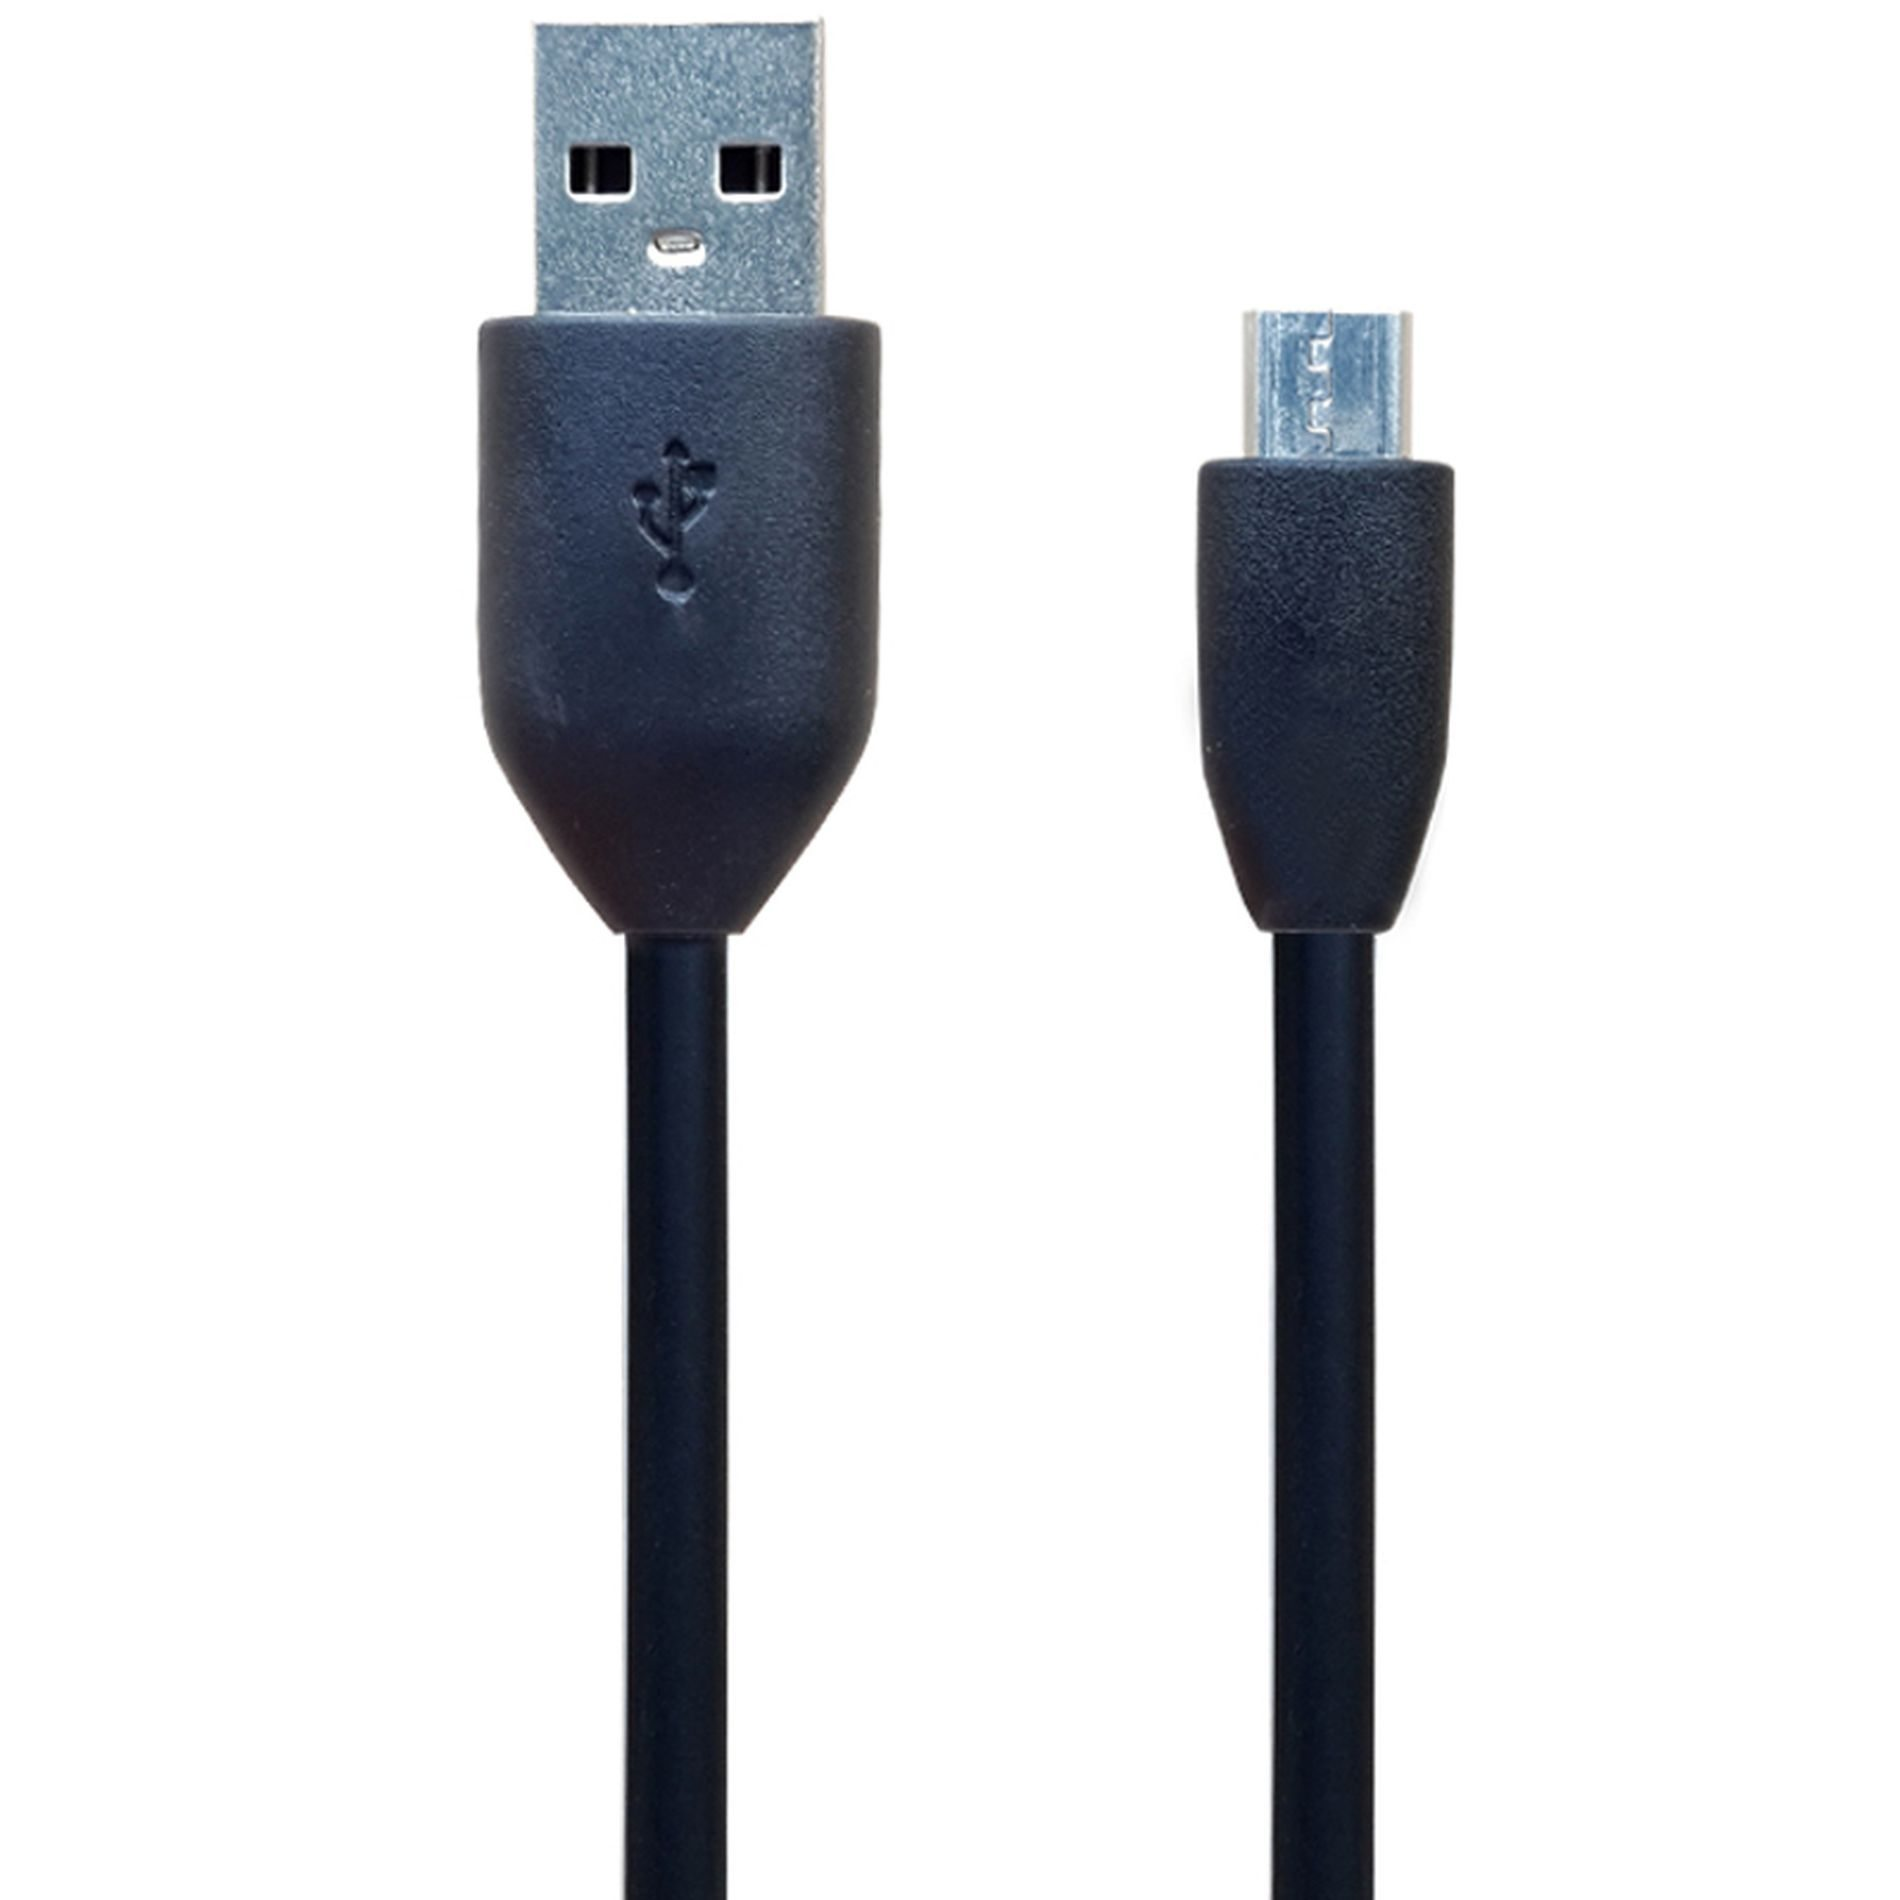 кабел Cable USB 2.0 AM / Micro USB M 1m - AM6001/BK